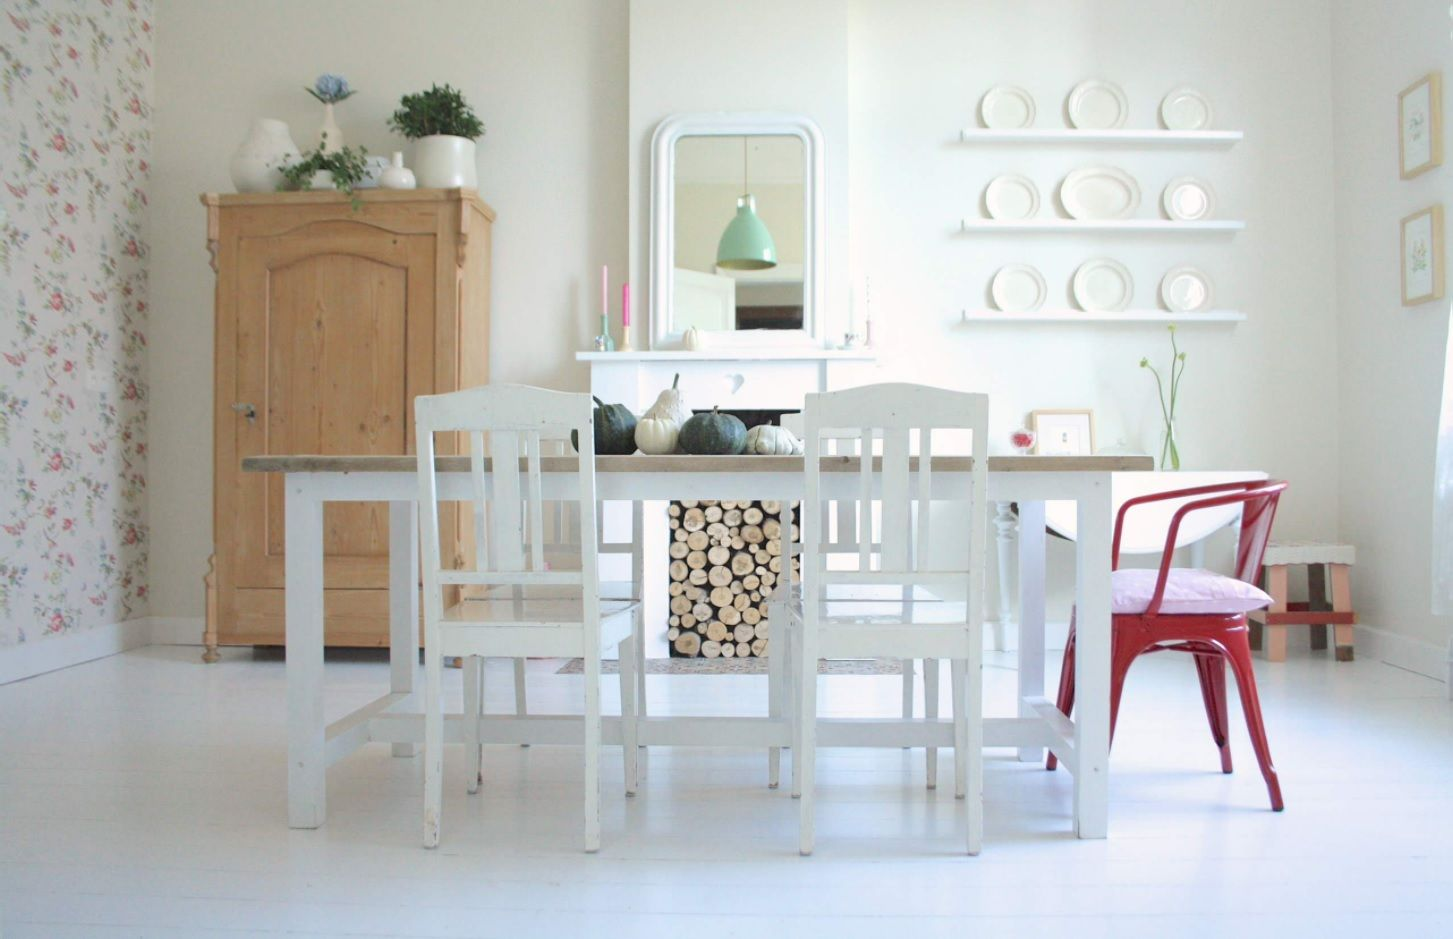 White matted chairs and table in the dining